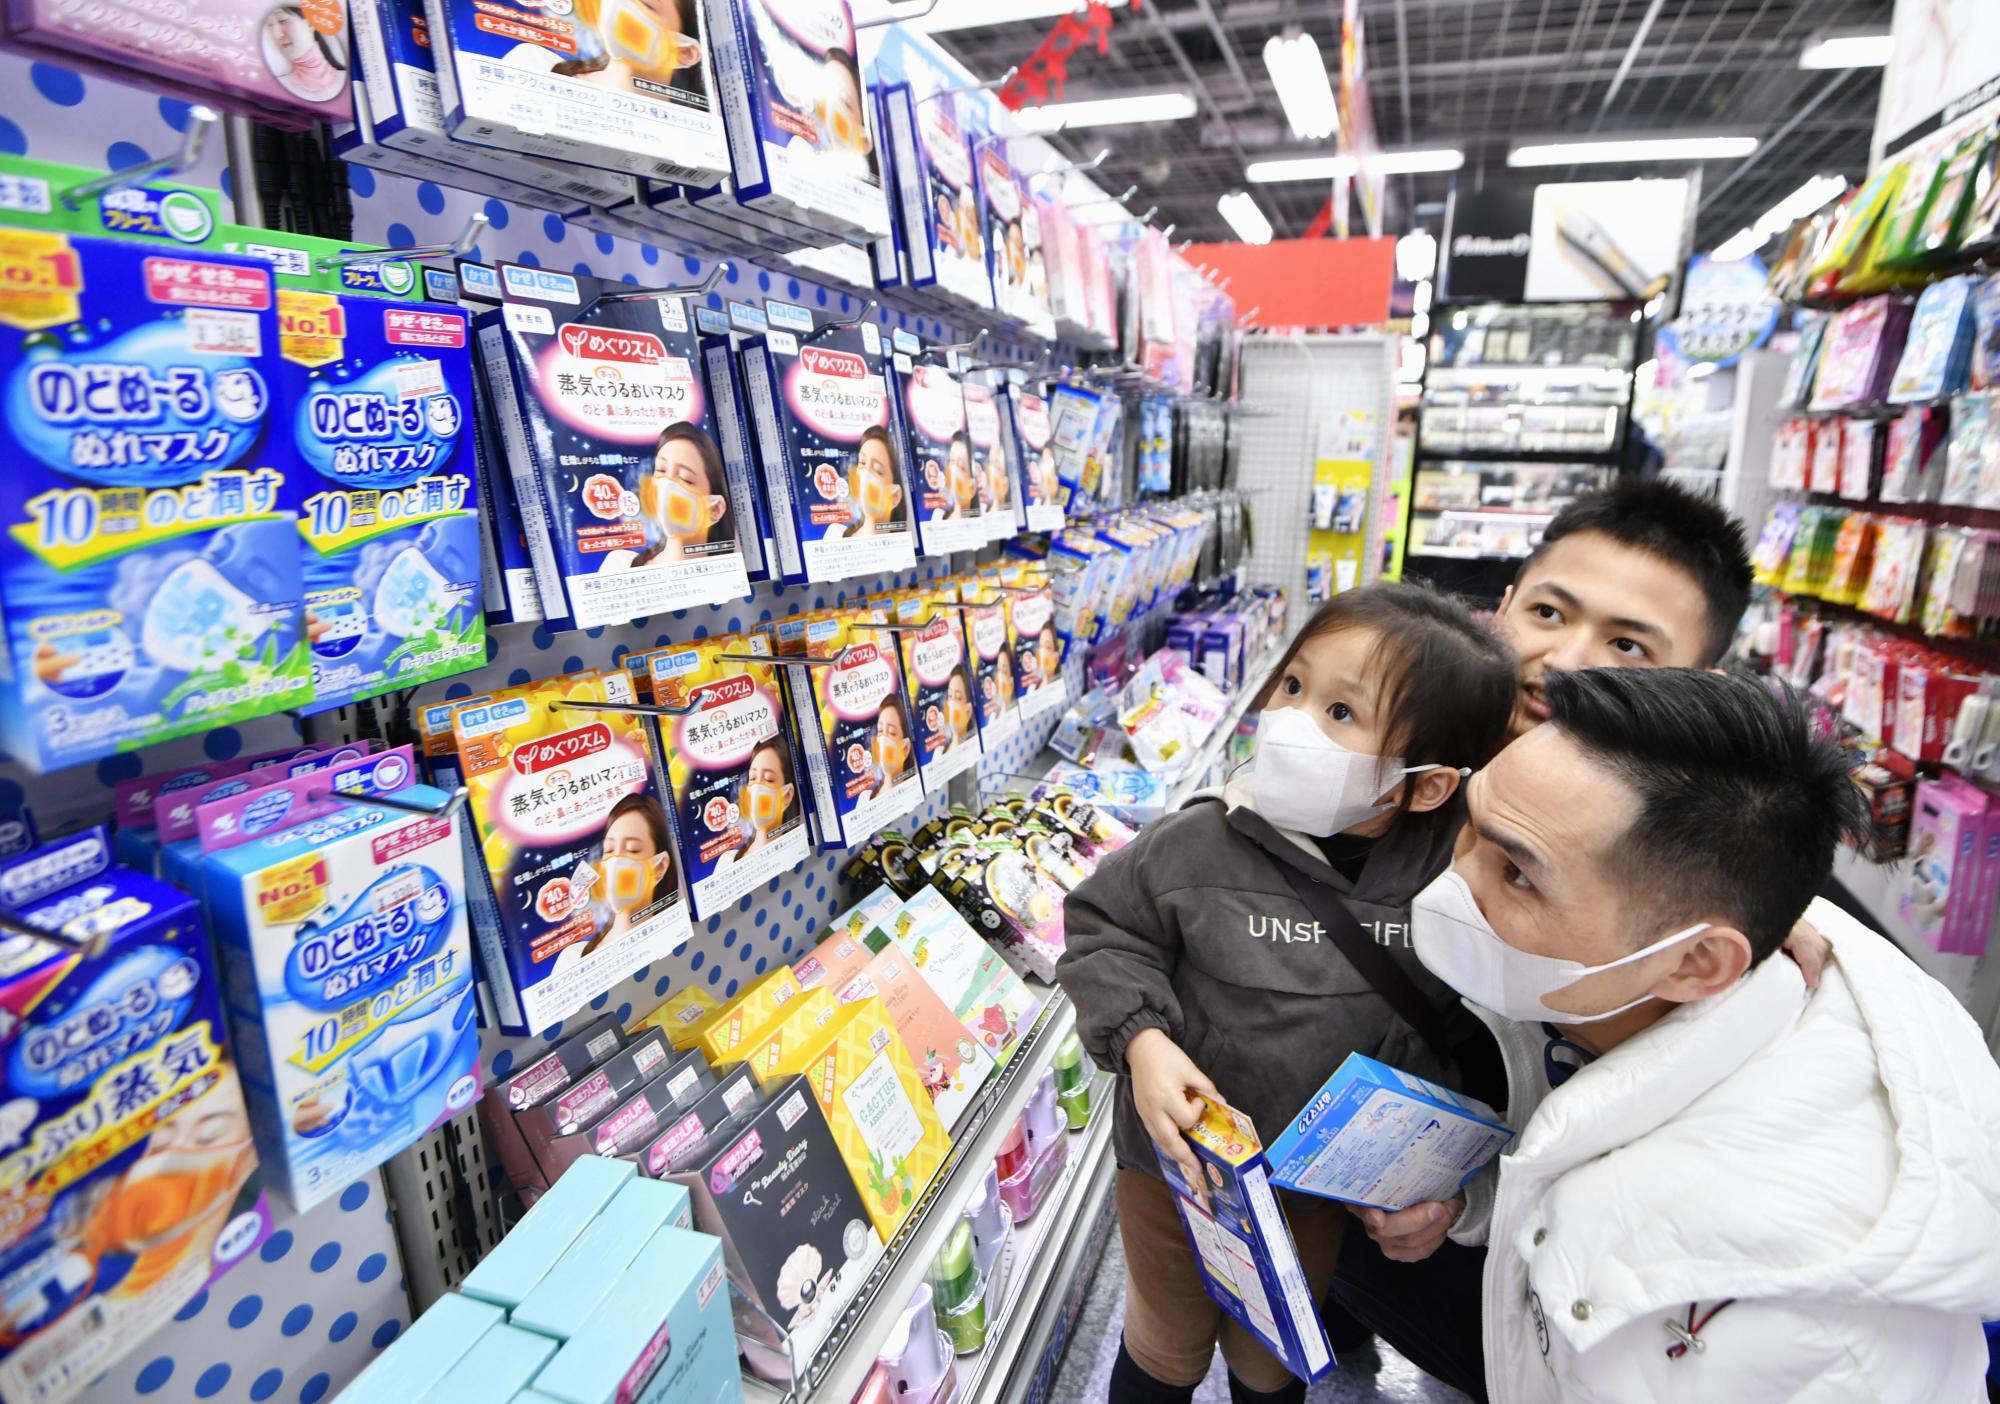 Pharmacies in Tokyo say that surgical masks are typically sold out by 10 a.m. amid growing fears over the coronavirus outbreak. | KYODO